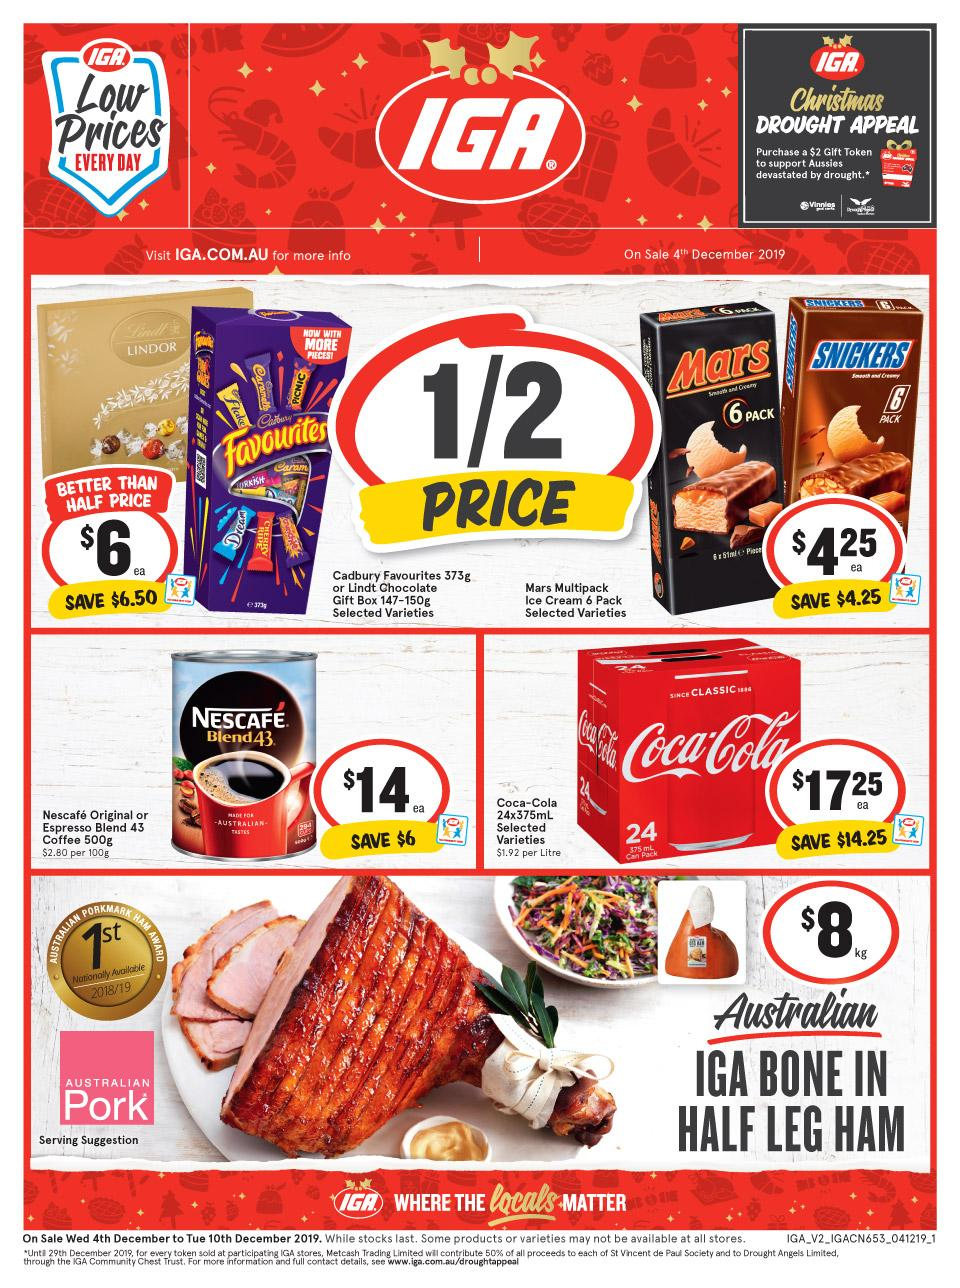 IGA Catalogue Low Prices Every day 4 - 10 Dec 2019